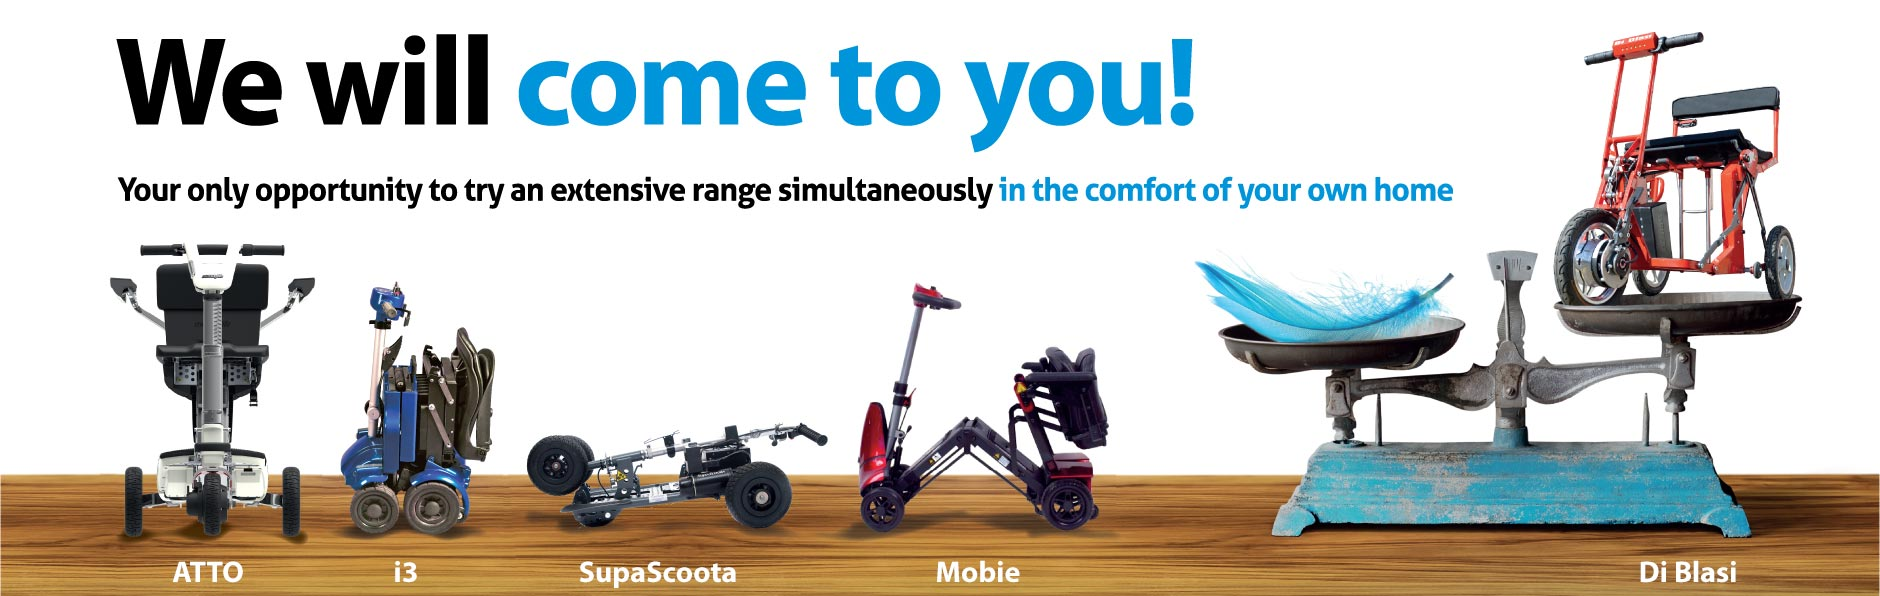 We will come to you. Try our extensive range of lightweight mobility scooters in the comfort of your own home